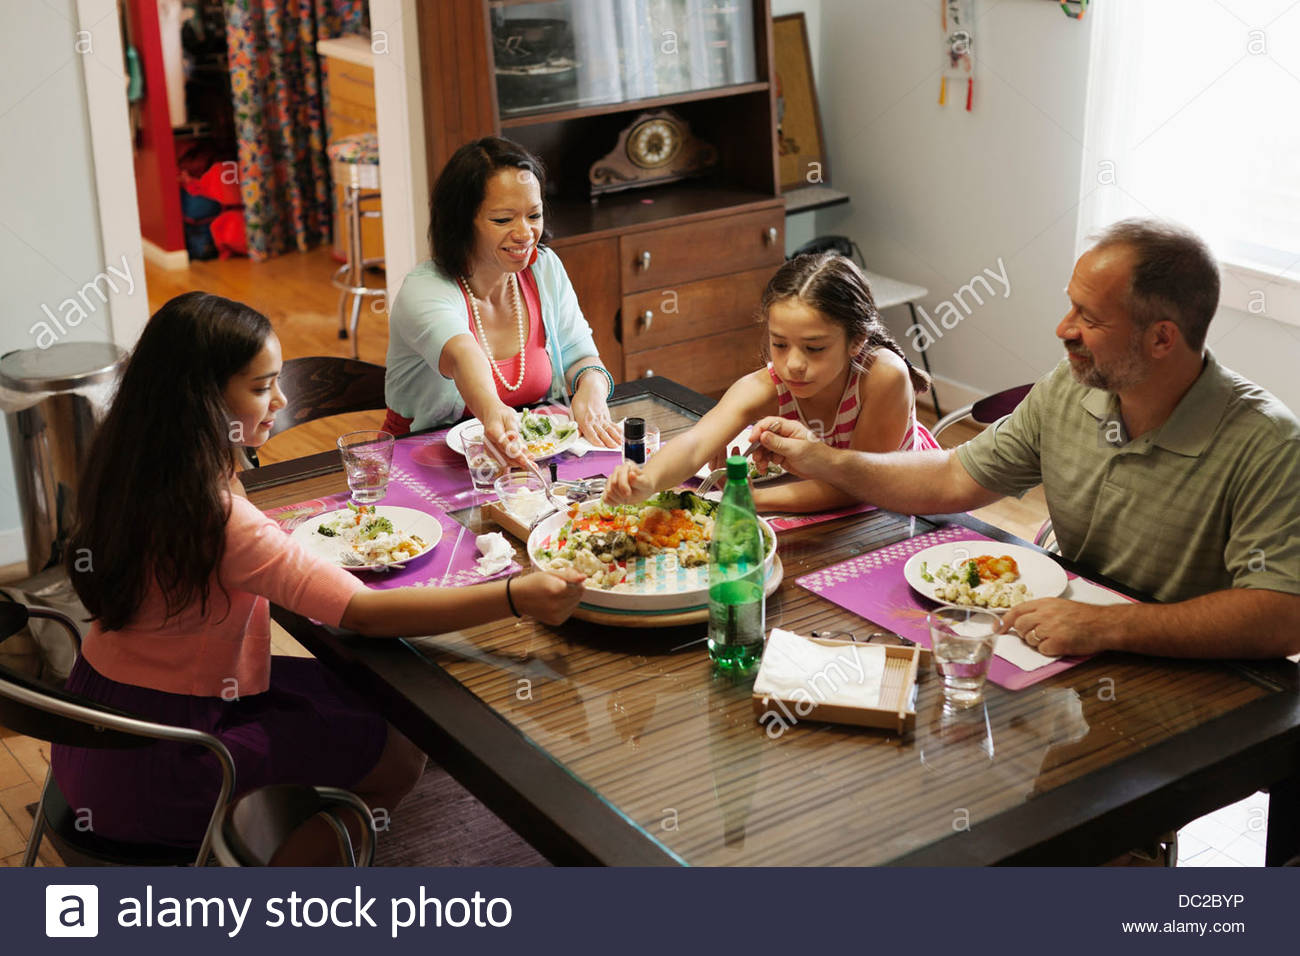 Family having a meal together - Stock Image